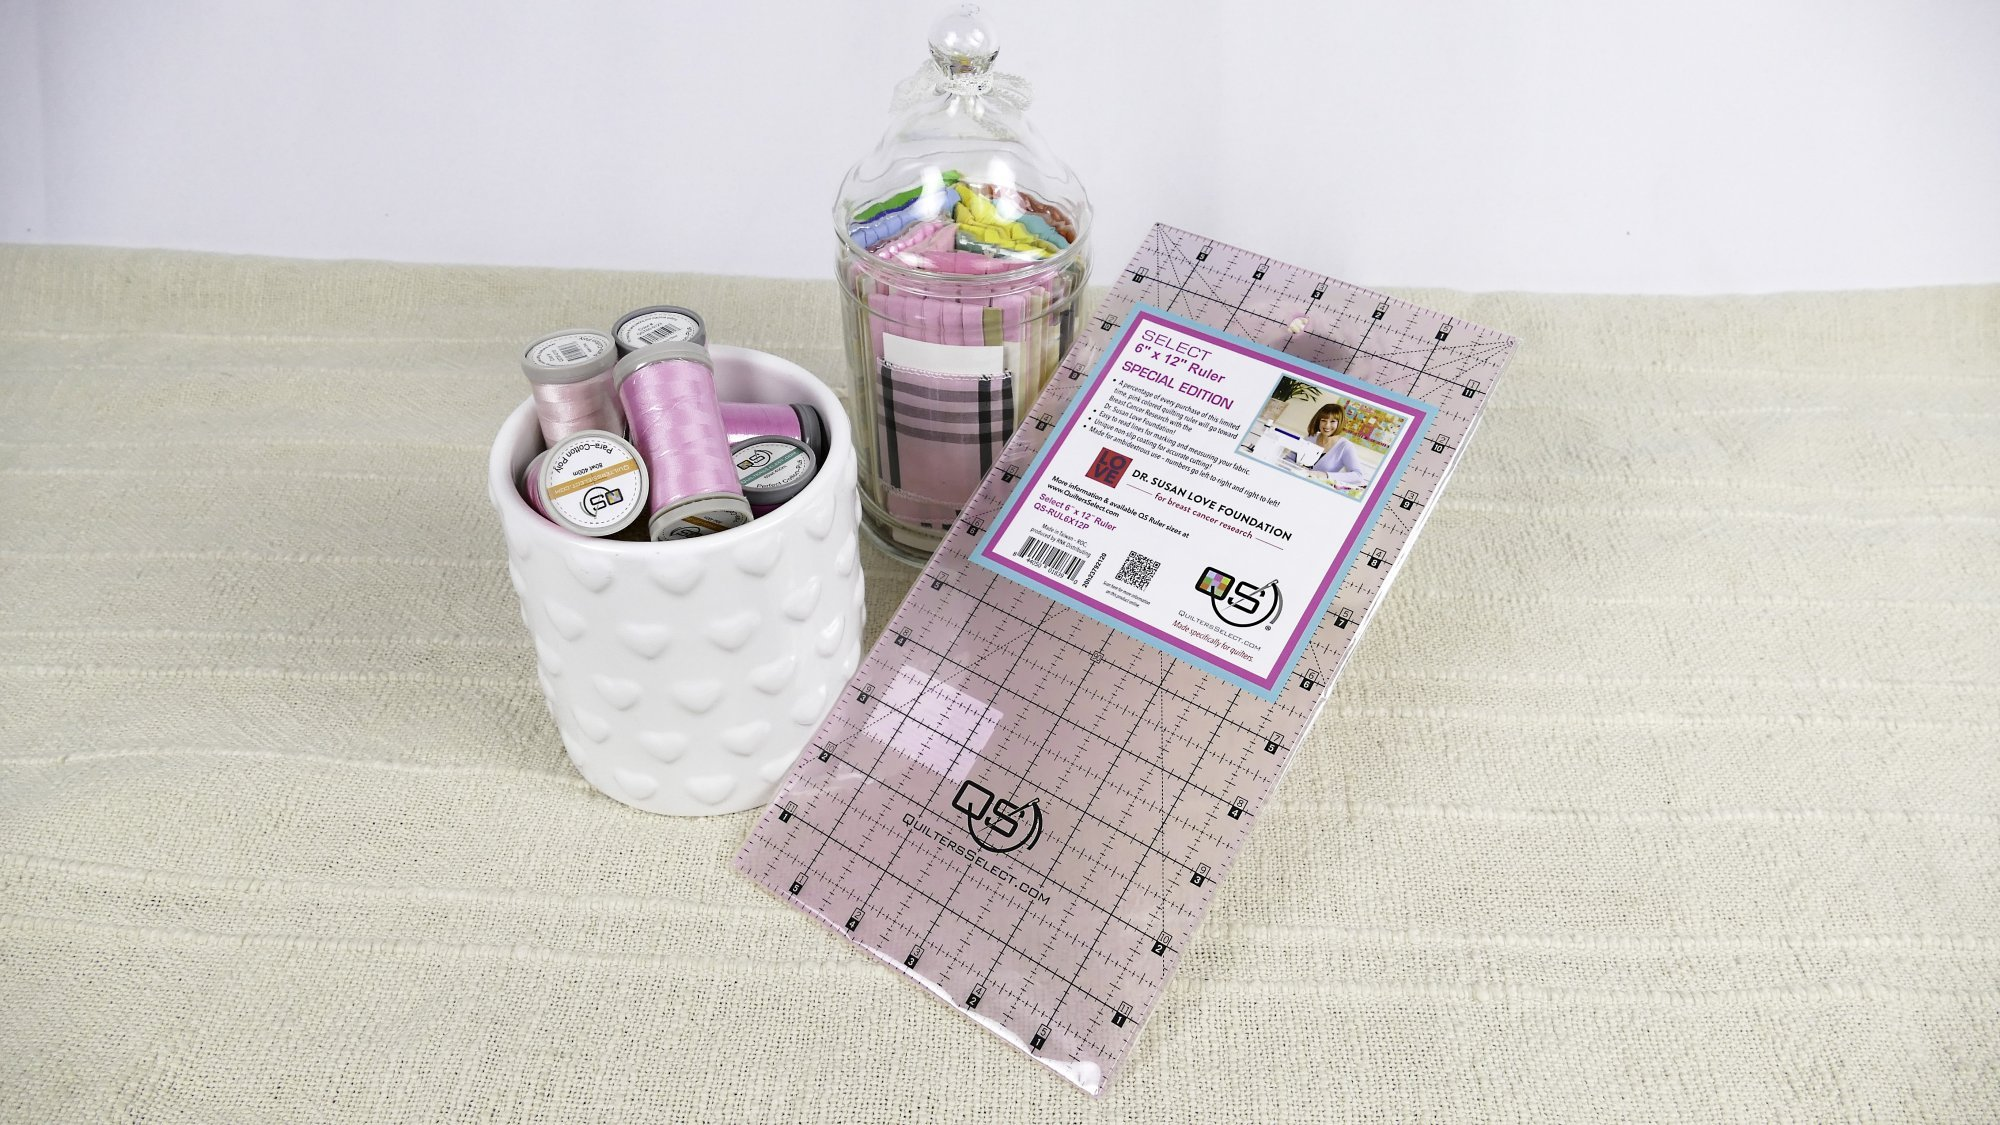 Quilters Select 6 x12 Ruler - Pink Limited Edition - QS-RUL6X12P